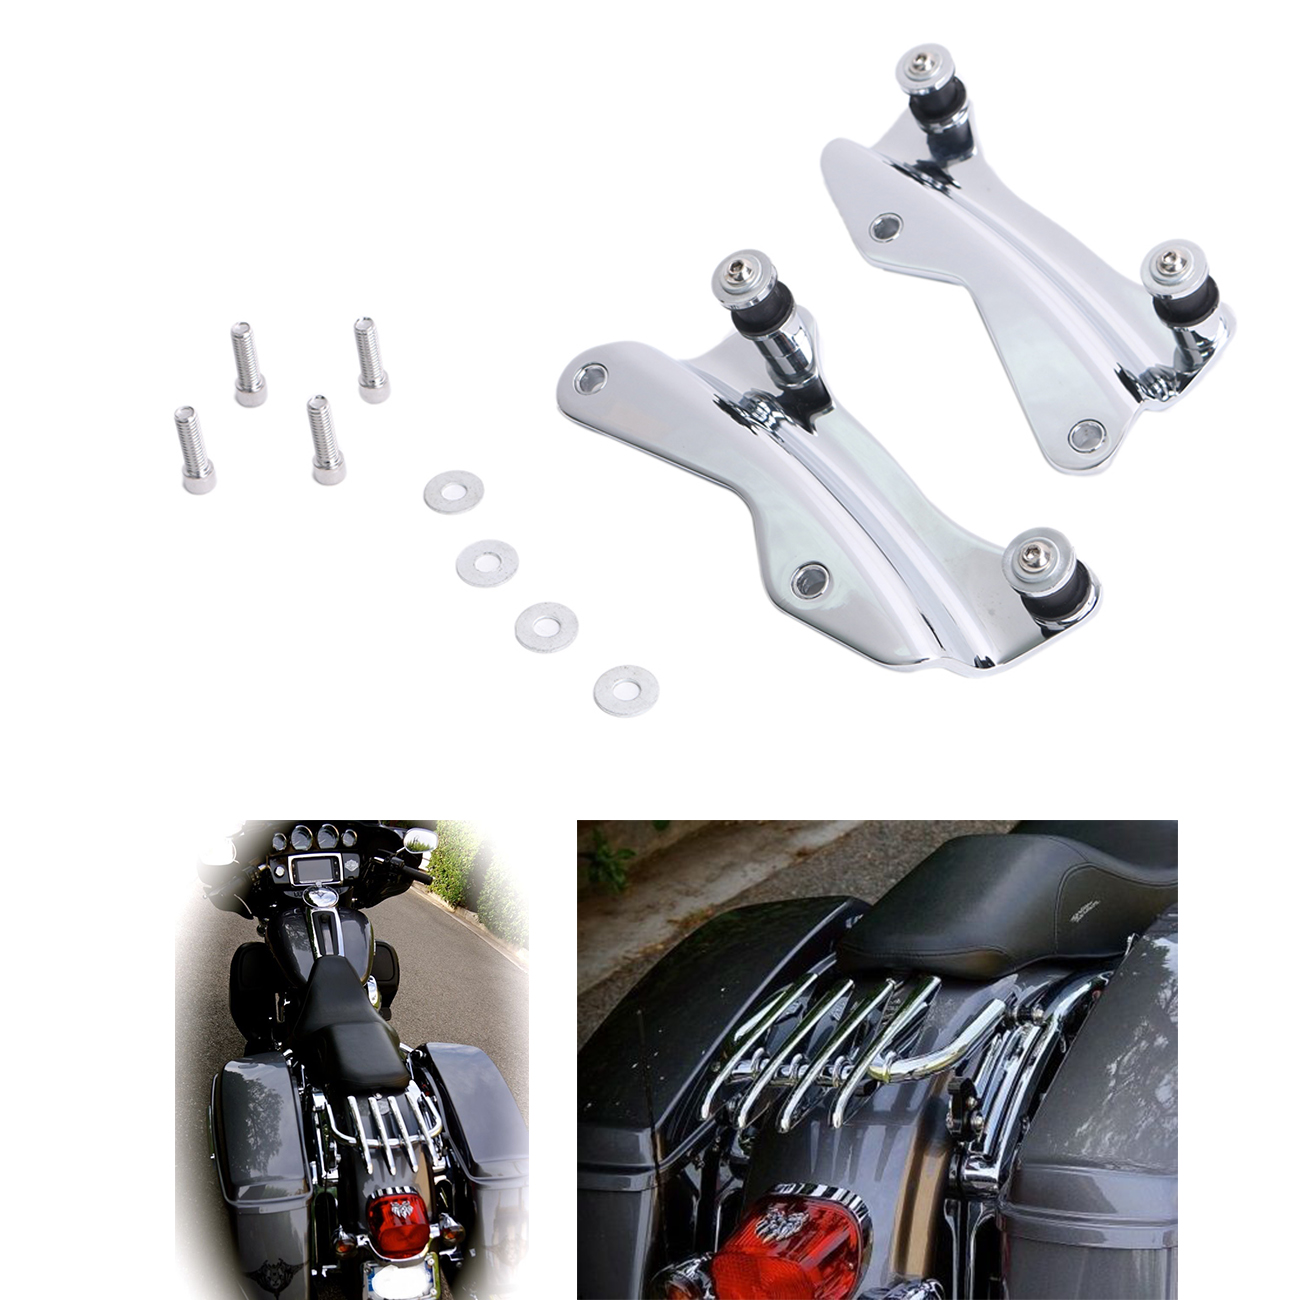 Billet Aluminum Motorcycle Chrome Docking Hardware Kit For Harley Touring Electra Glide Road King FLH FLT 2014-2017  #MBT241 meziere wp101b sbc billet elec w p